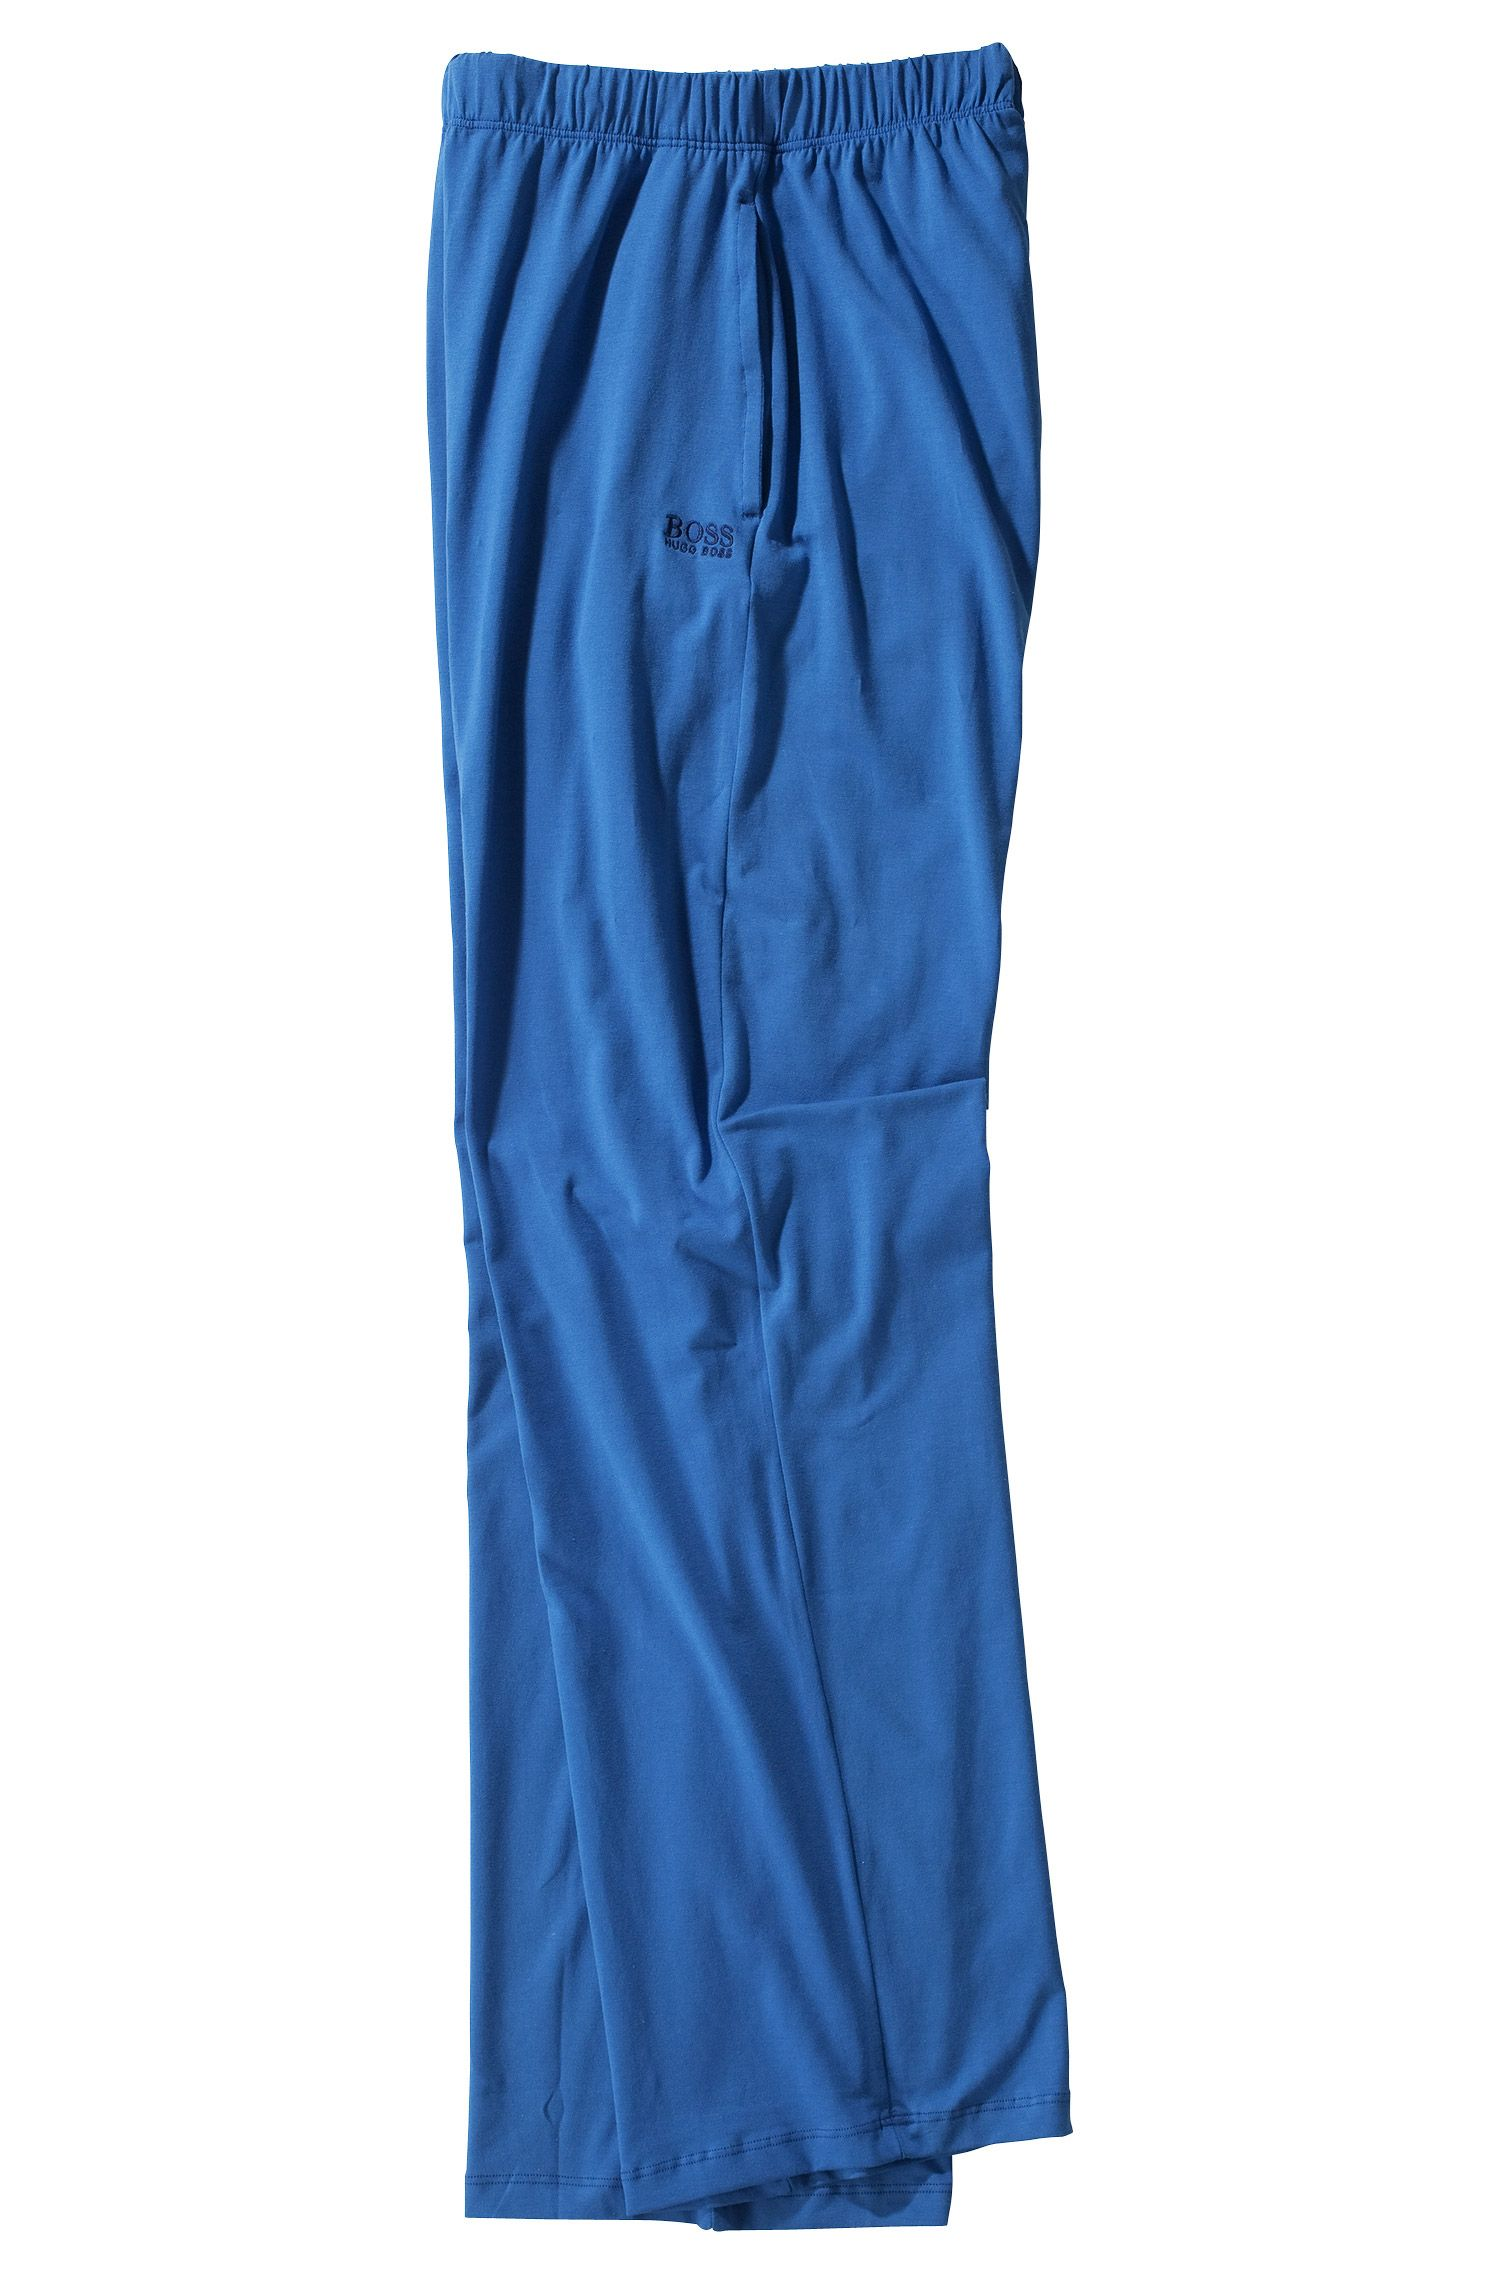 Hose ´Long Pant CW BM` aus Baumwollkomposition